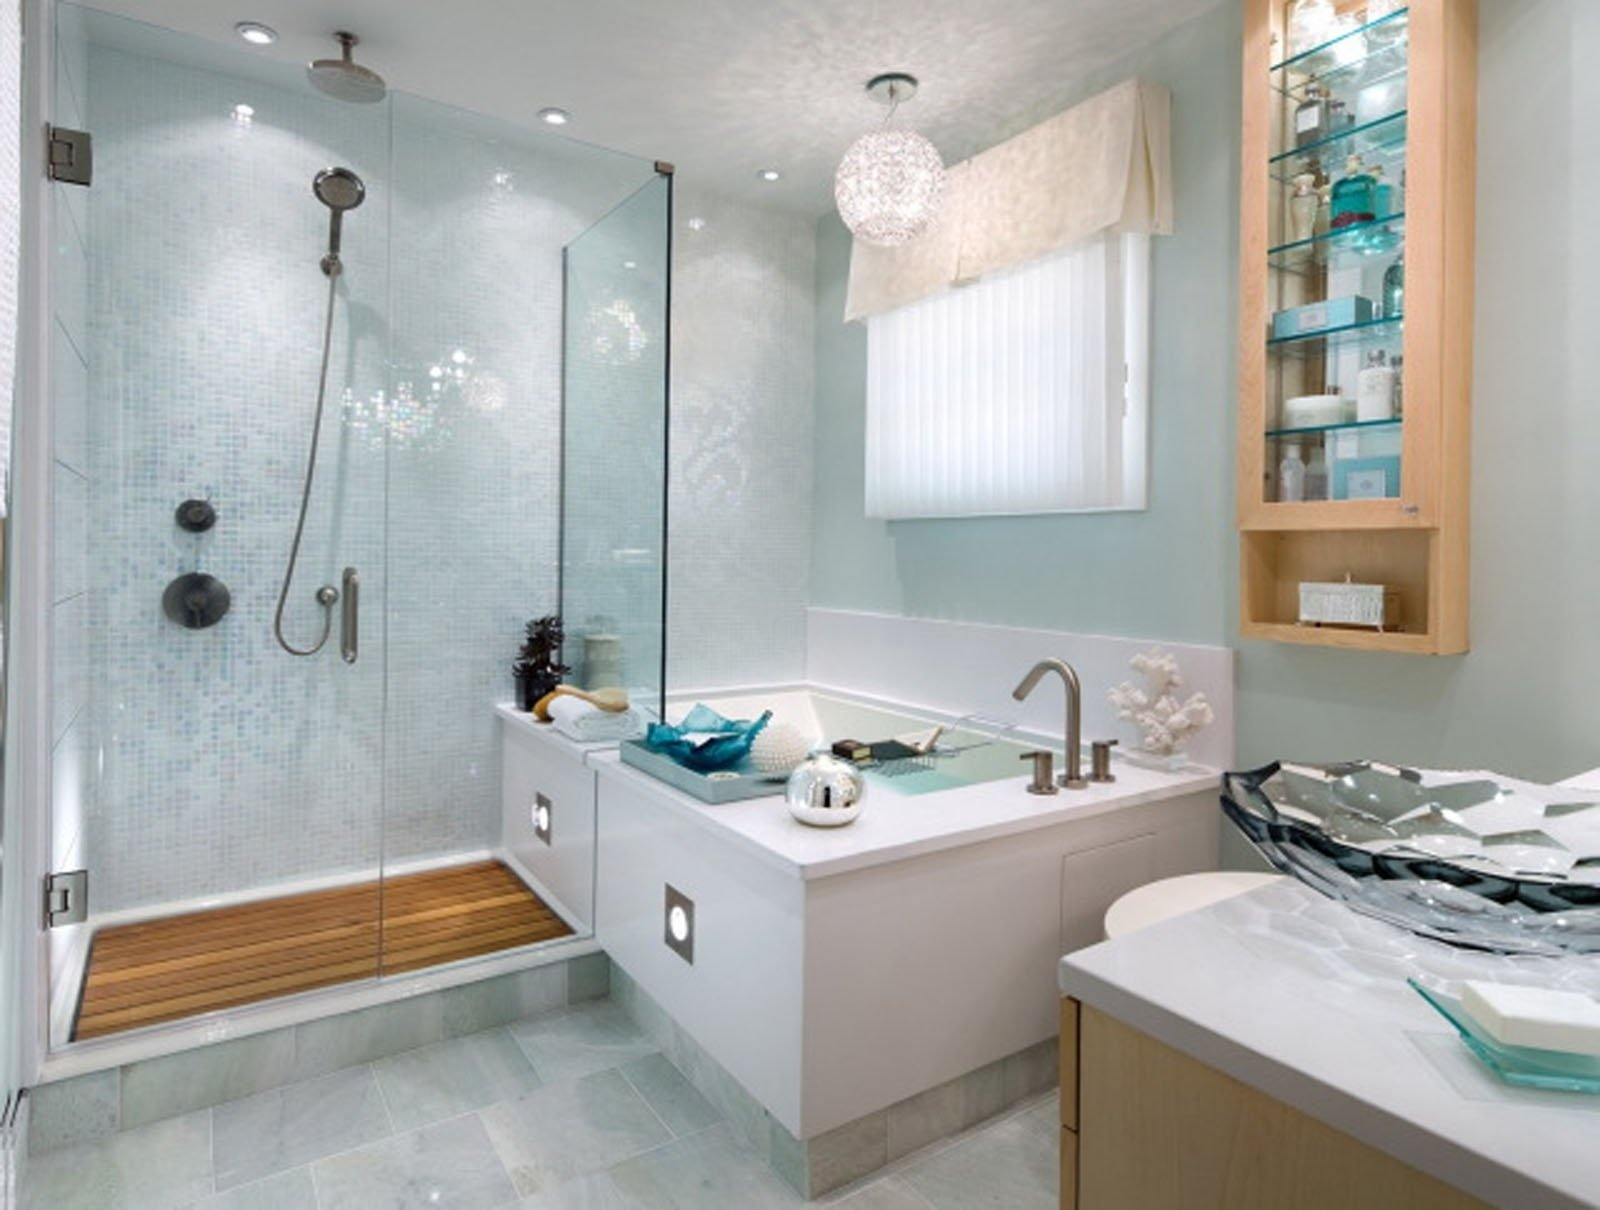 10 Cute Small Bathroom Ideas On A Budget small bathroom ideas on a budget smartrubix com and the design of to 1